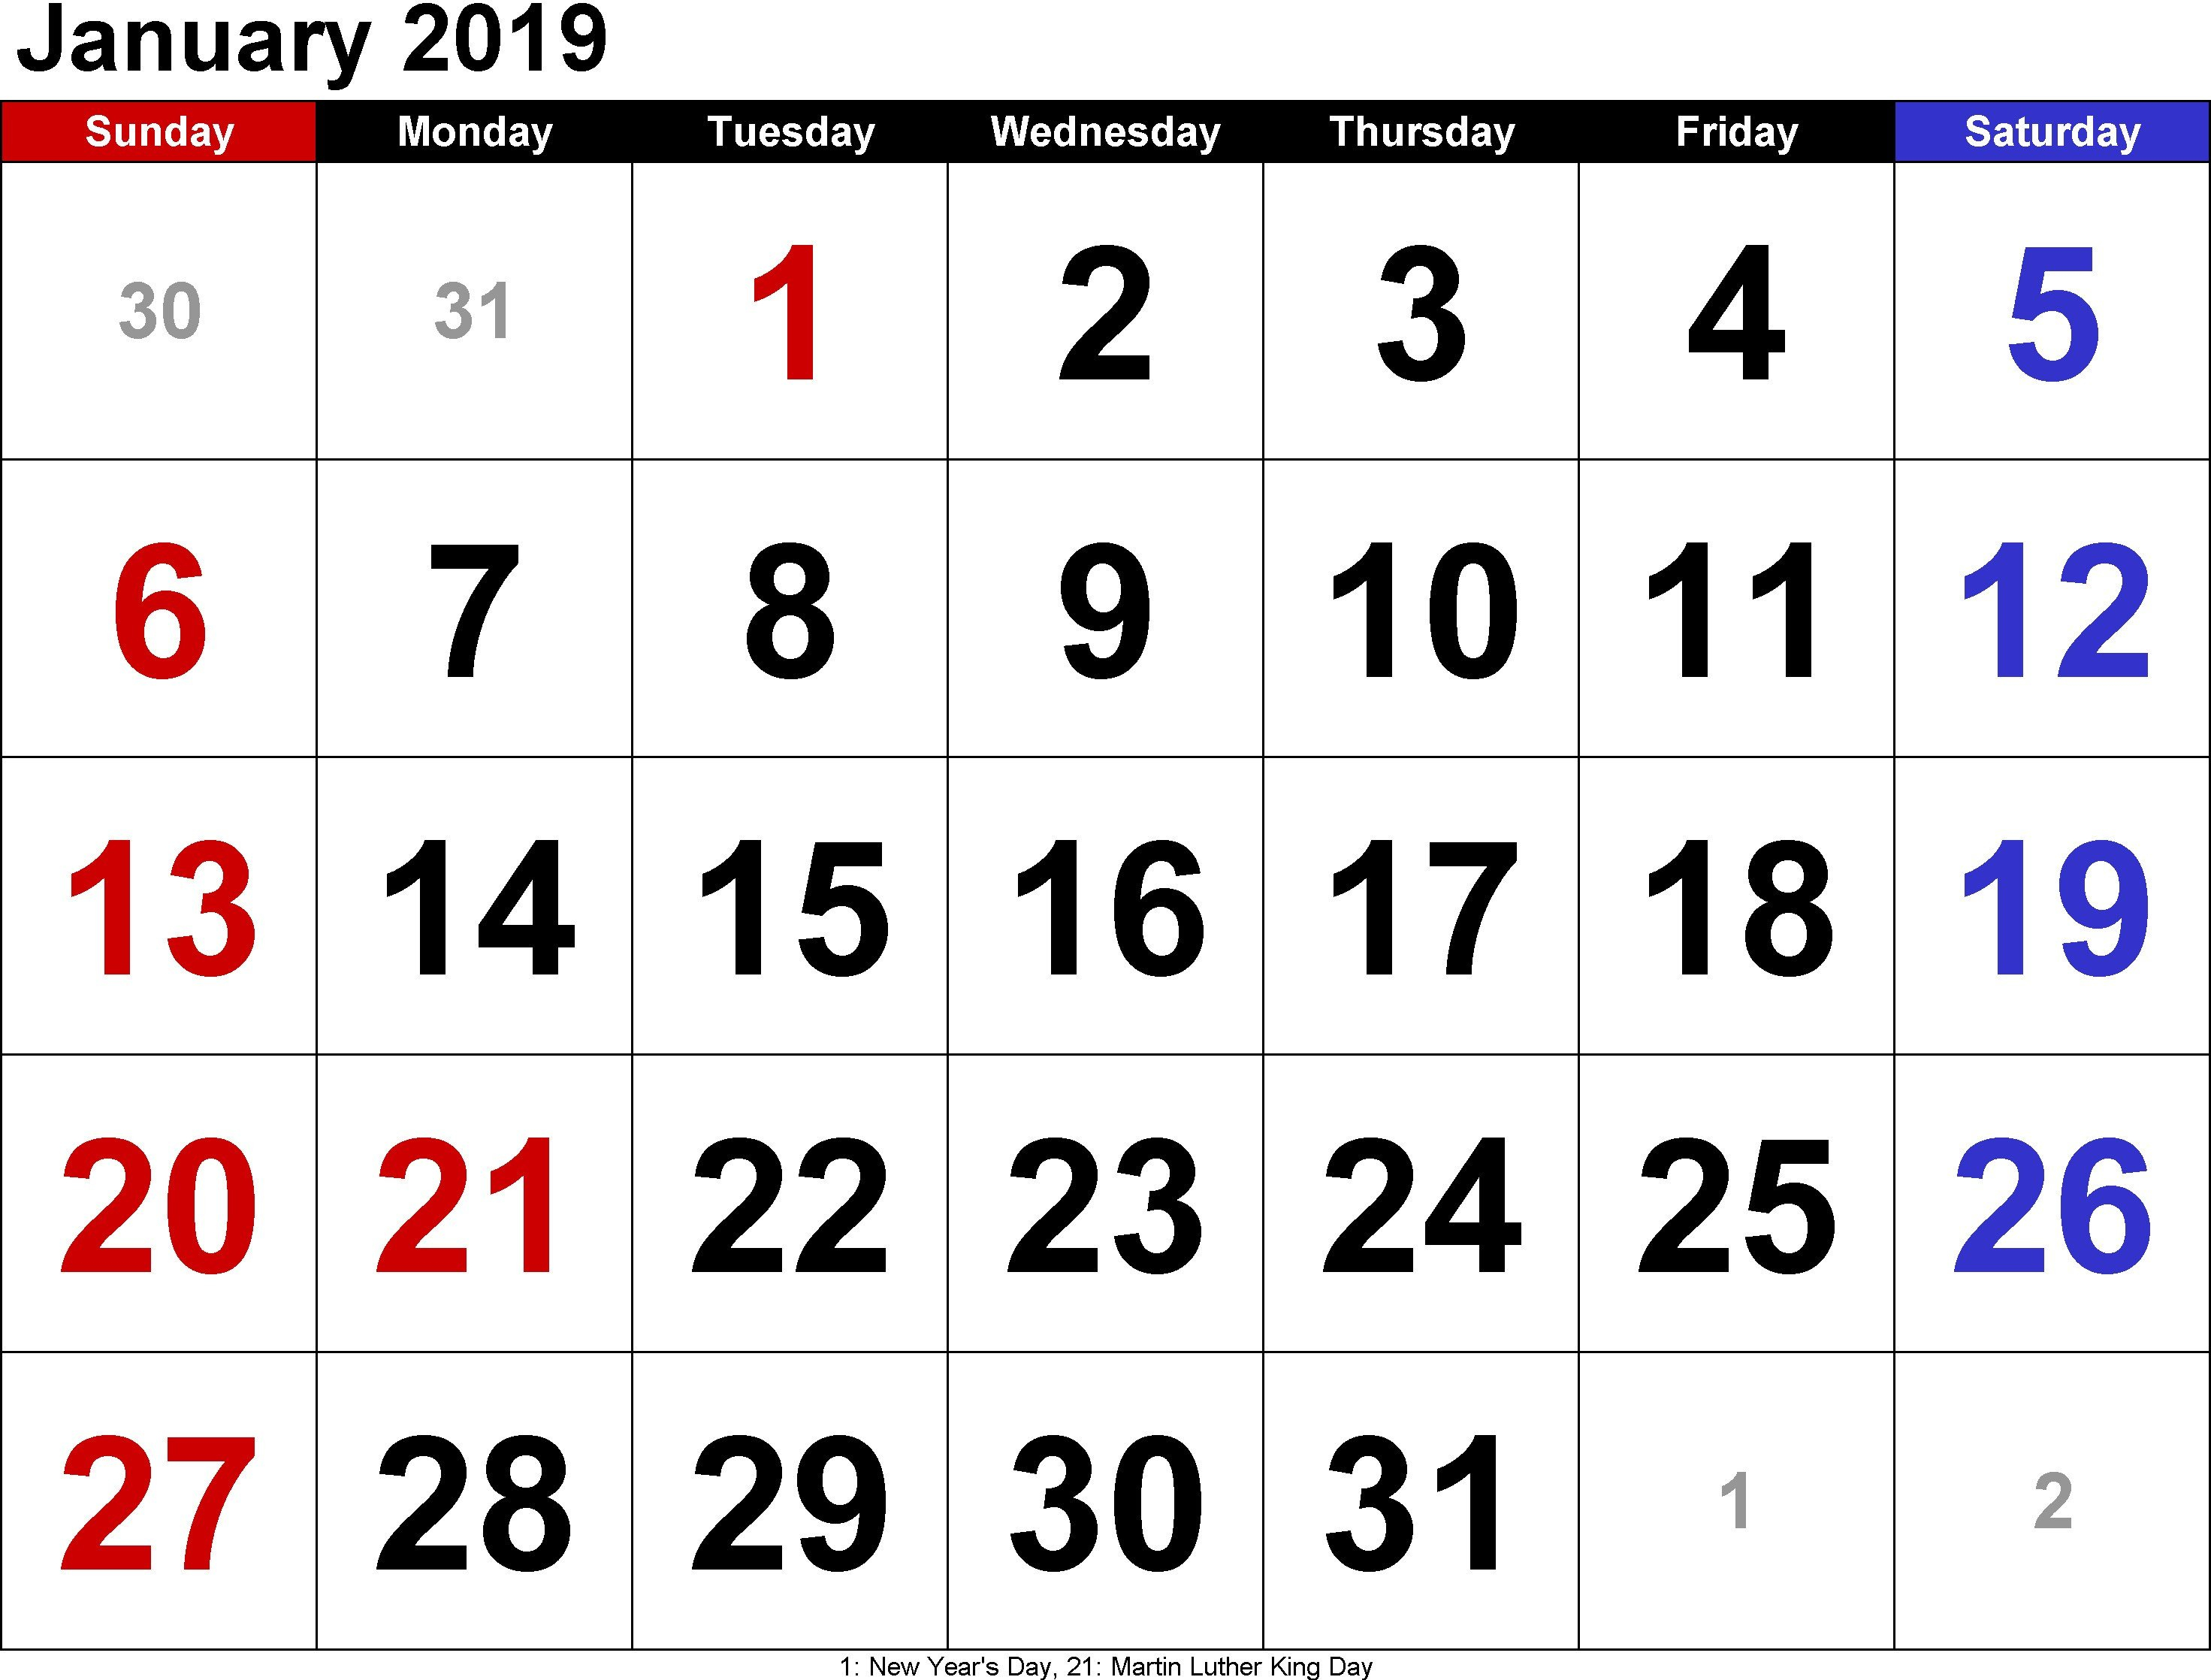 2019 January Calendar With Holidays Archives - Free March 2019 January 6 2019 Calendar